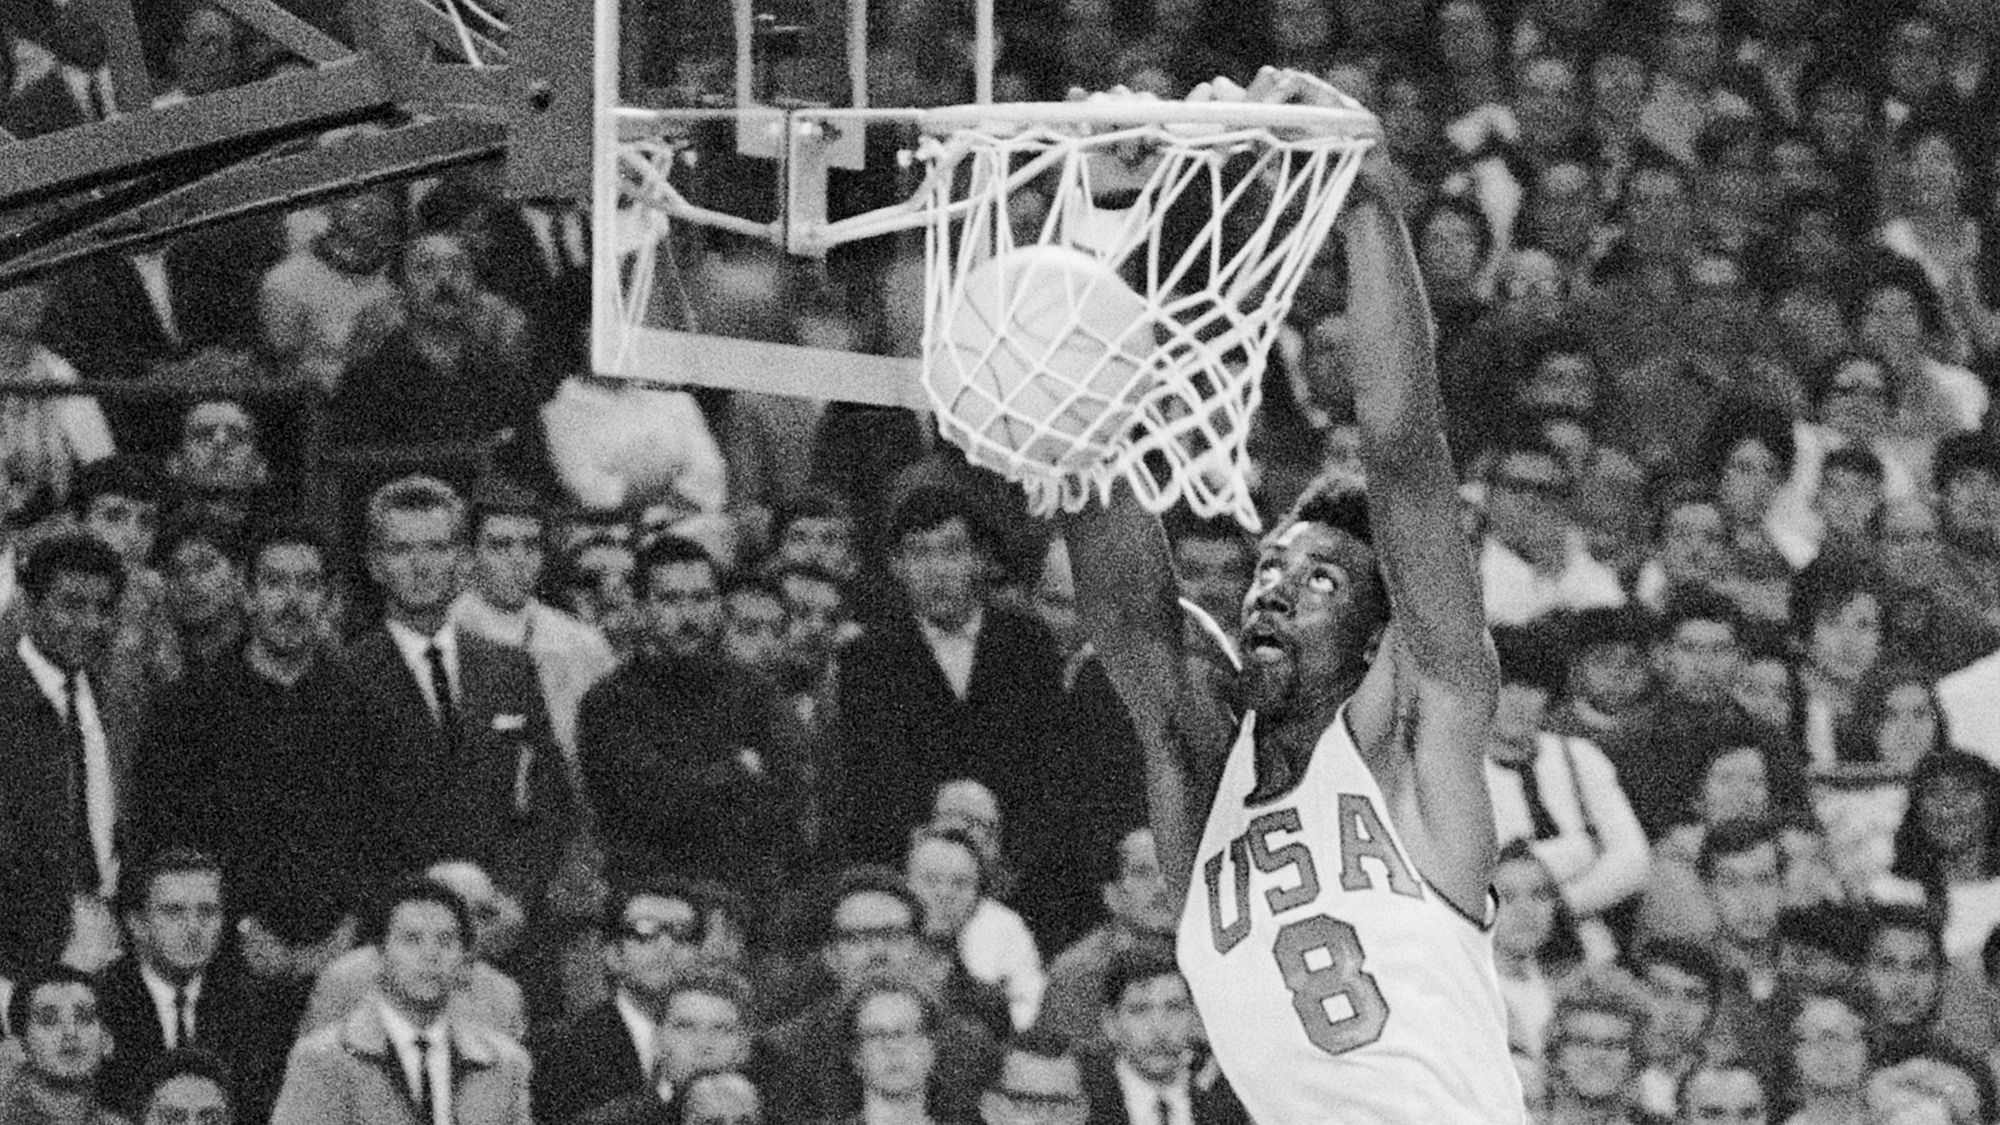 Olympic Player Spencer Haywood Scoring Basket